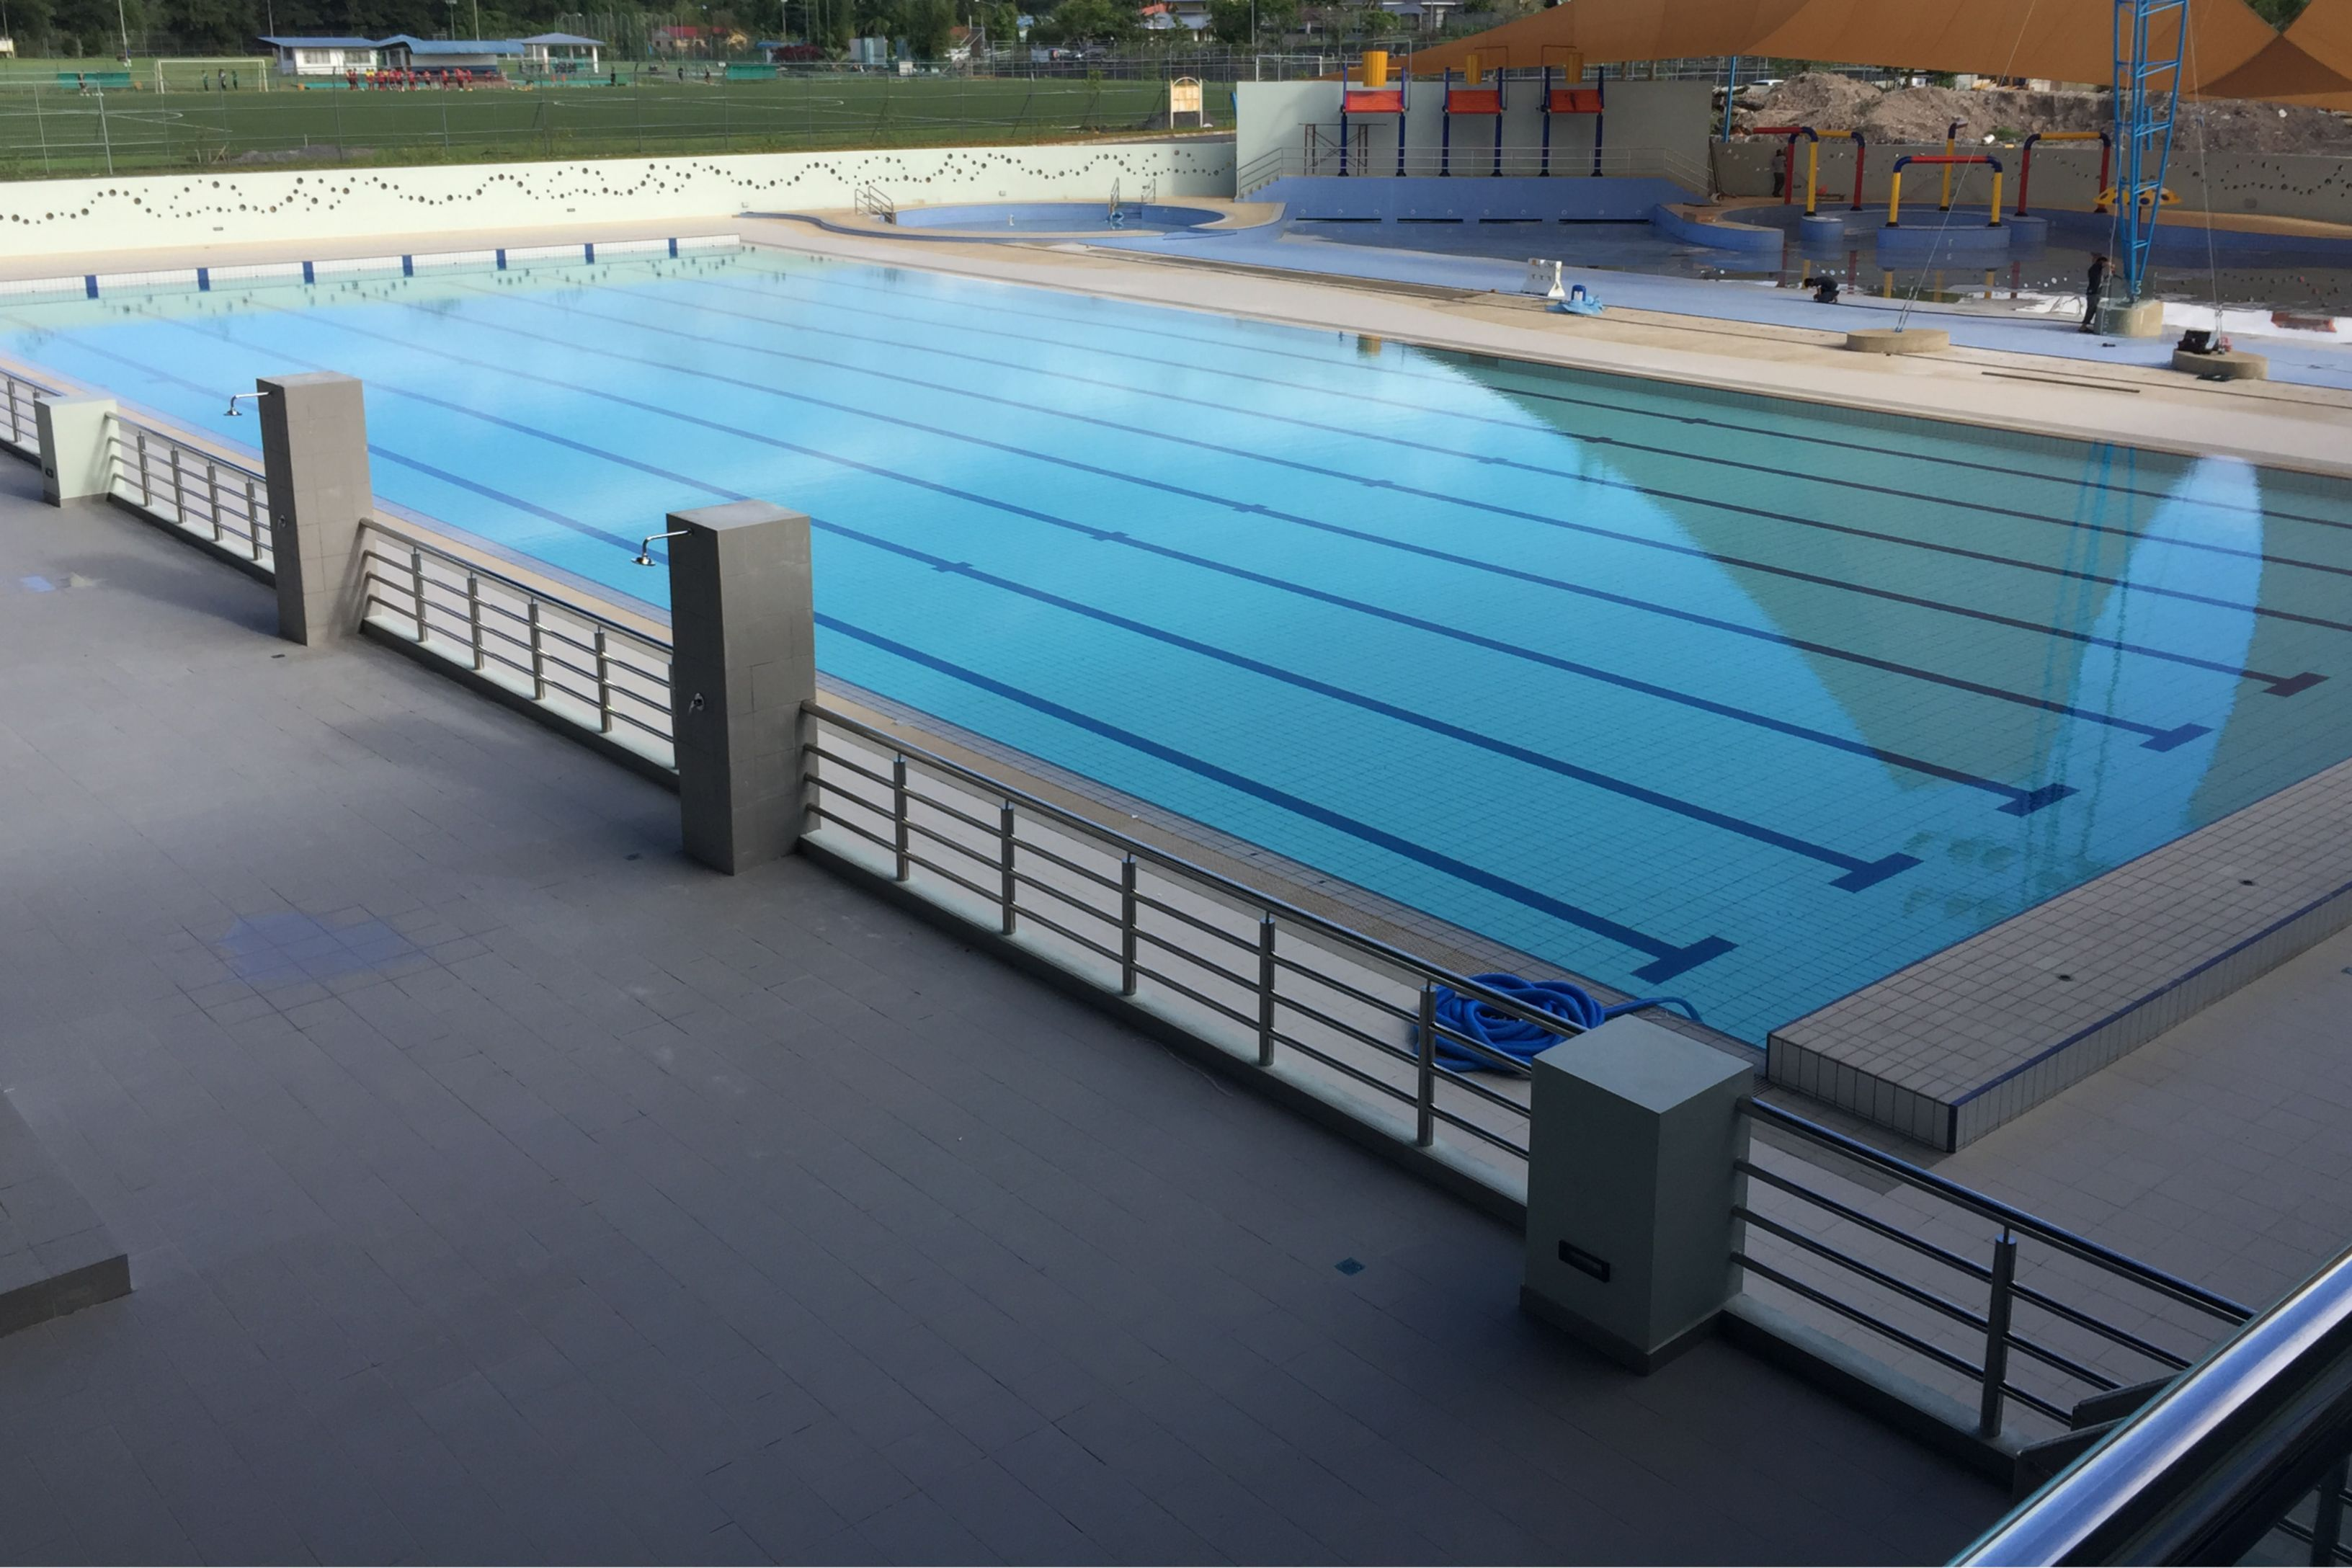 Swimming pool at Pandelela Rinong Aquatics Centre, built with Sika waterproofing products.